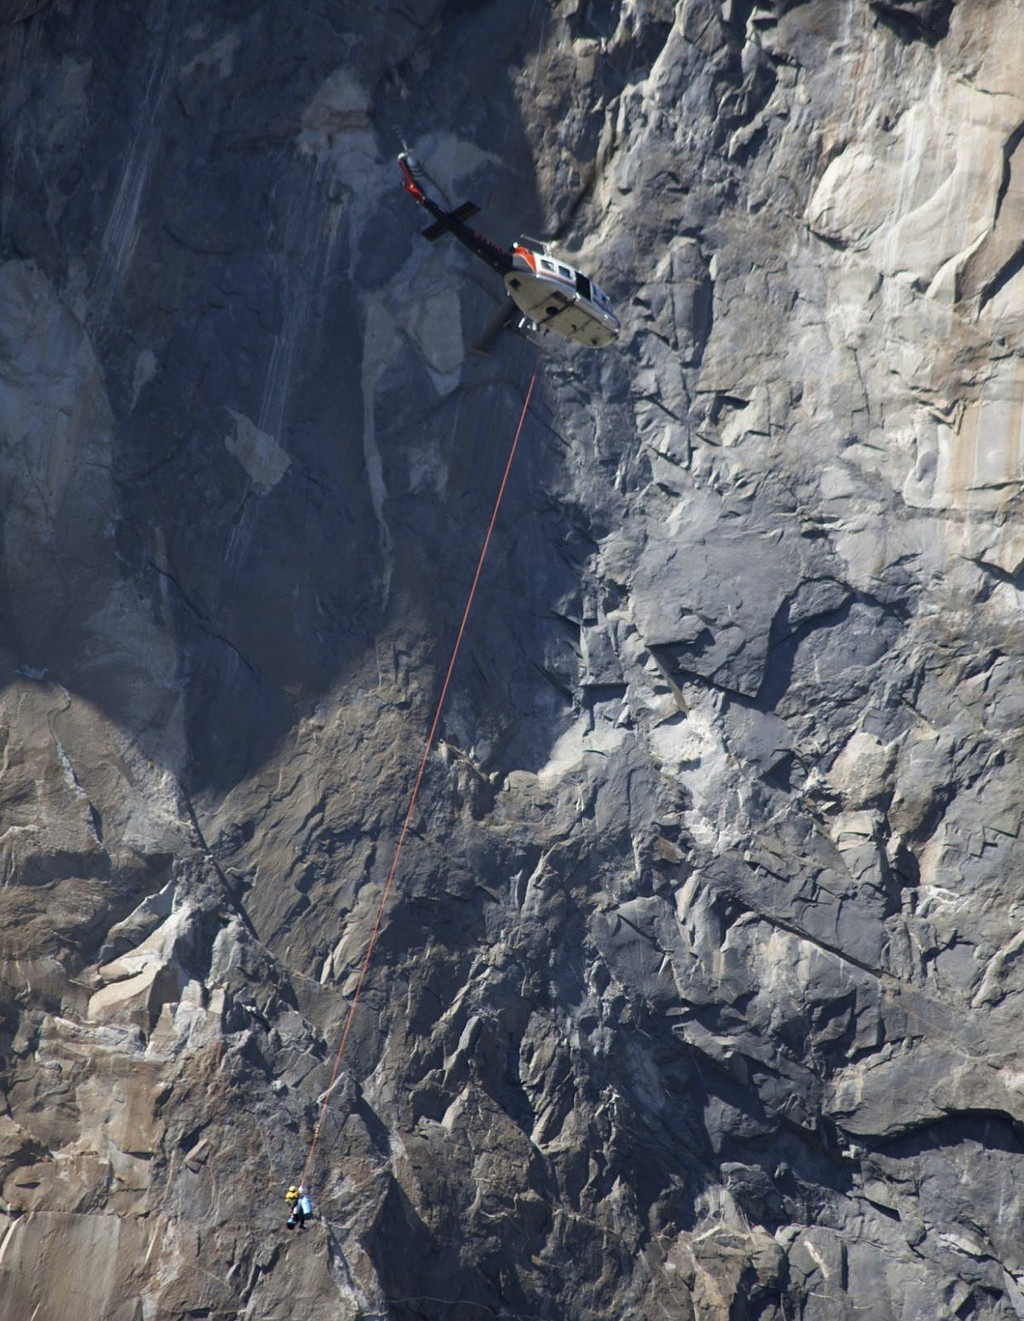 In this Wednesday Sept. 27, 2017, photo provided by Dakota Snider, photographer and Yosemite resident, a helicopter makes a rescue off El Capitan afte...